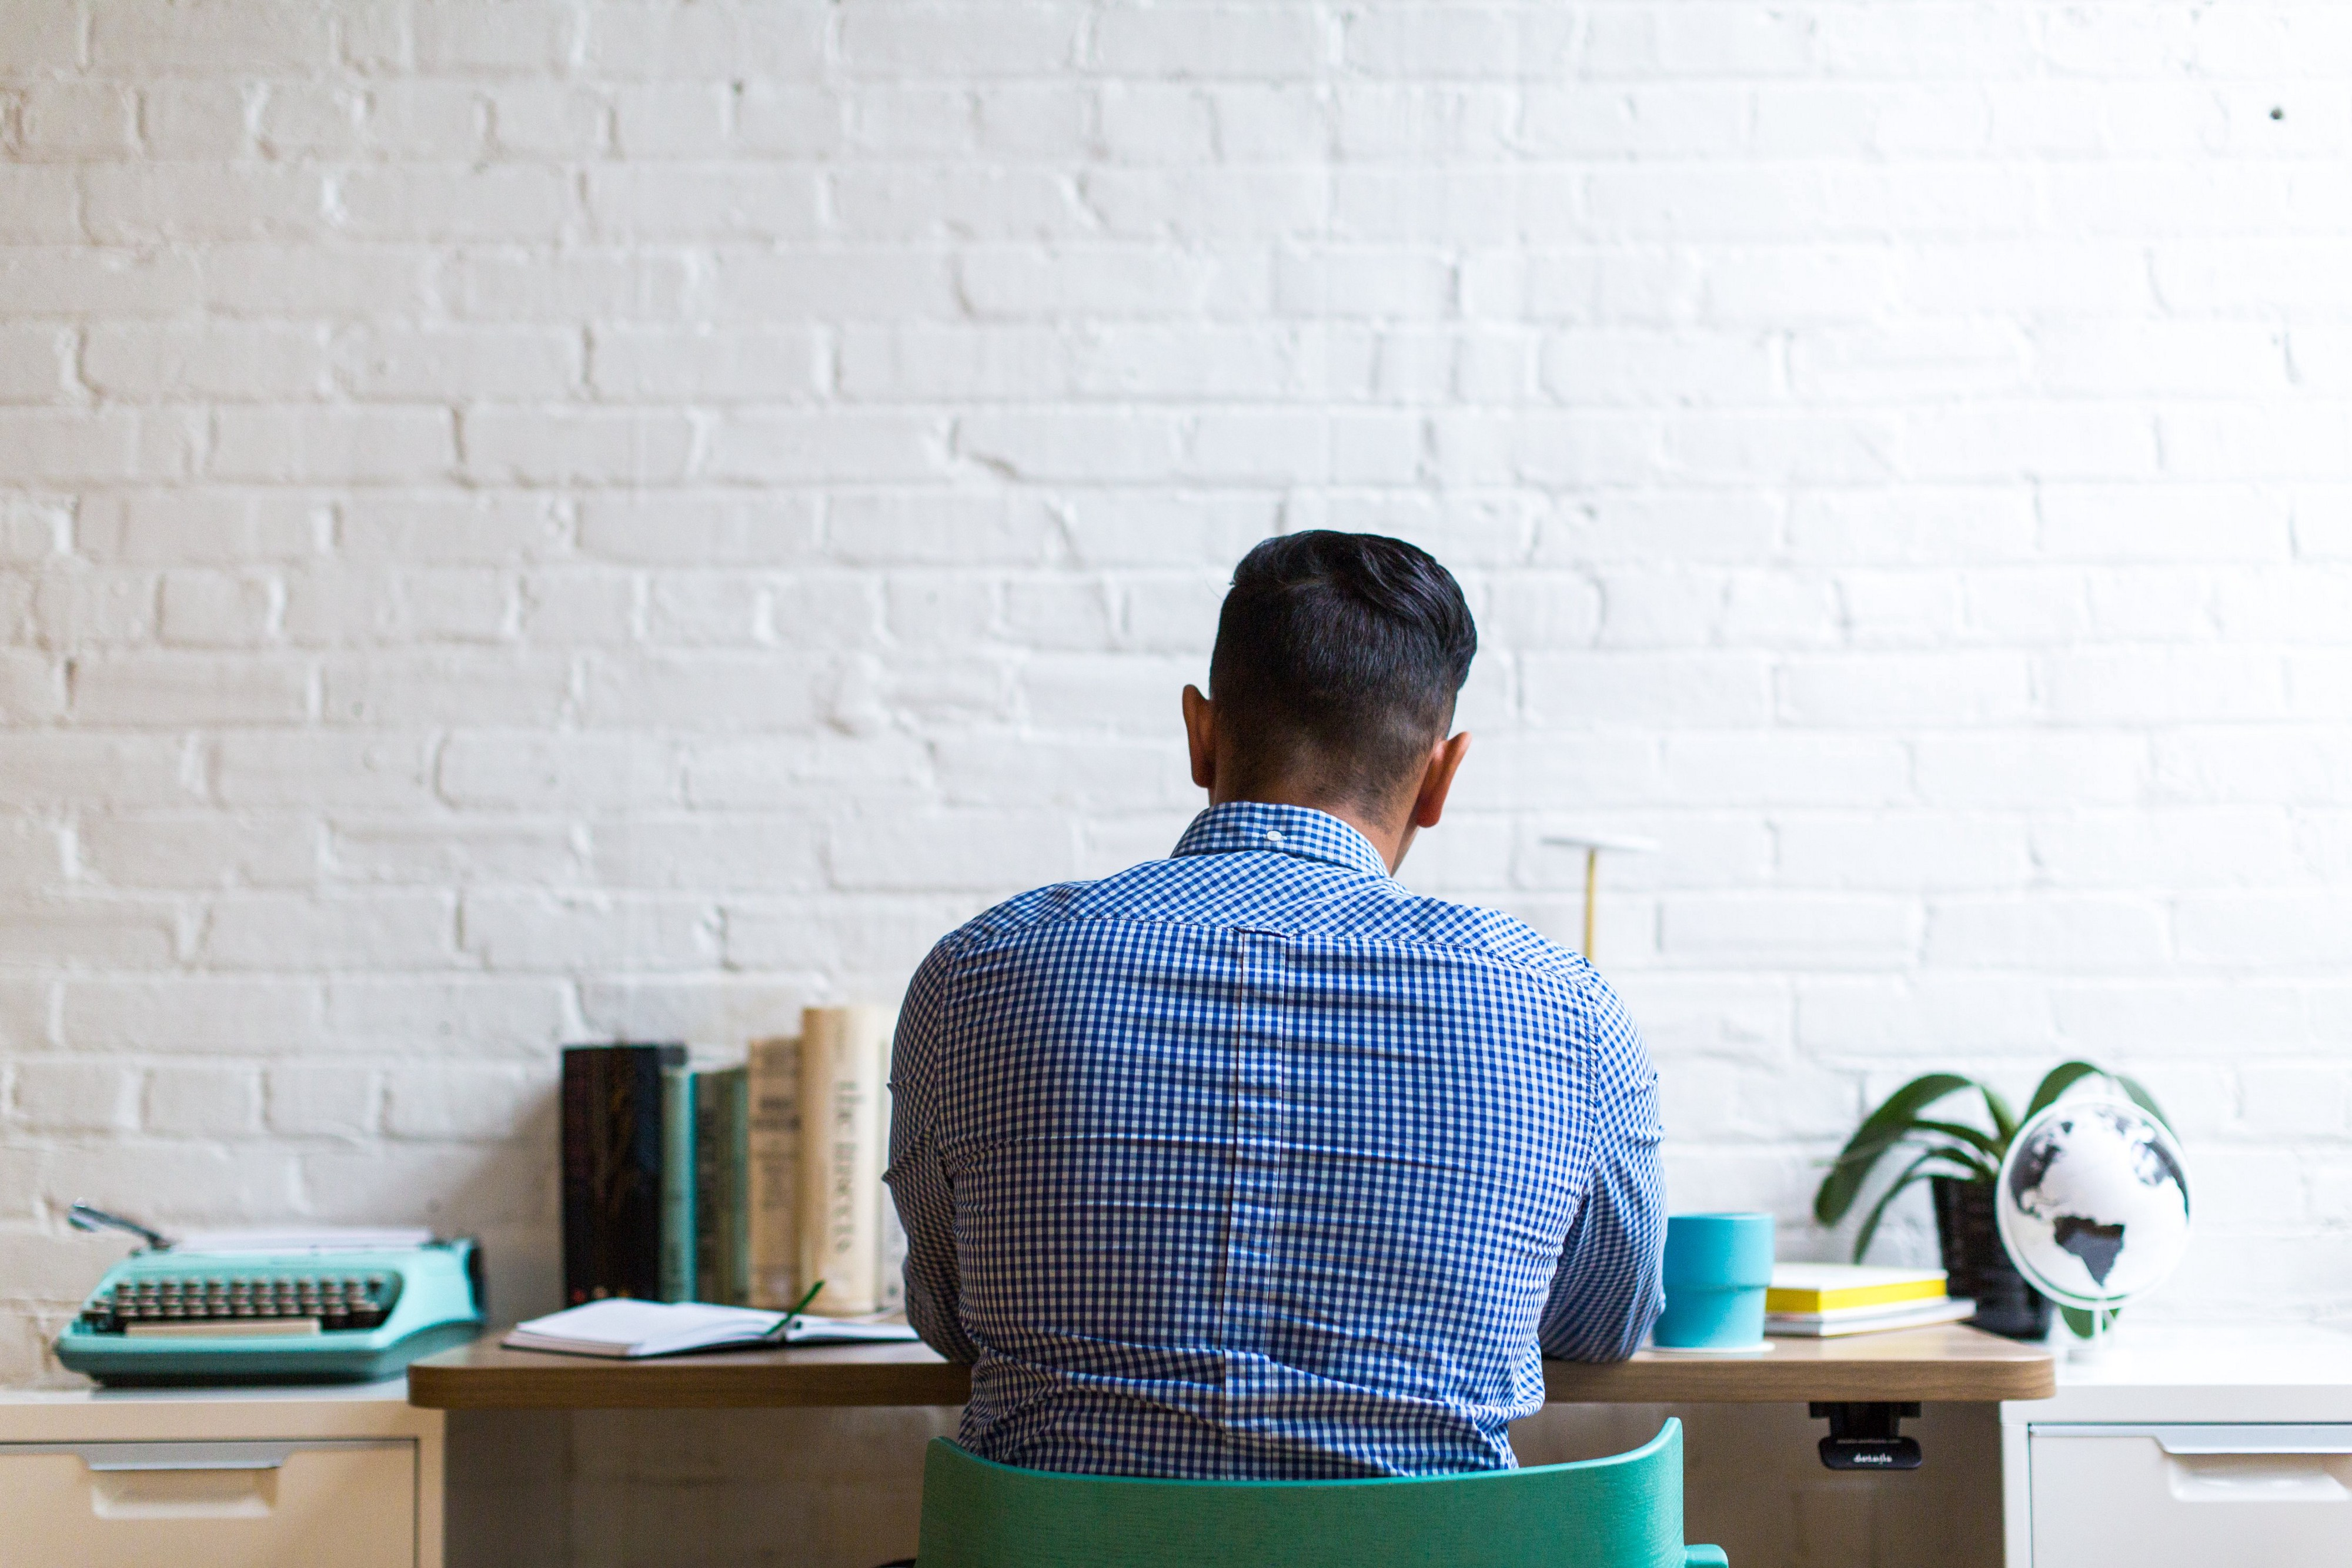 man sitting at a desk thinking and working, his back to the viewer